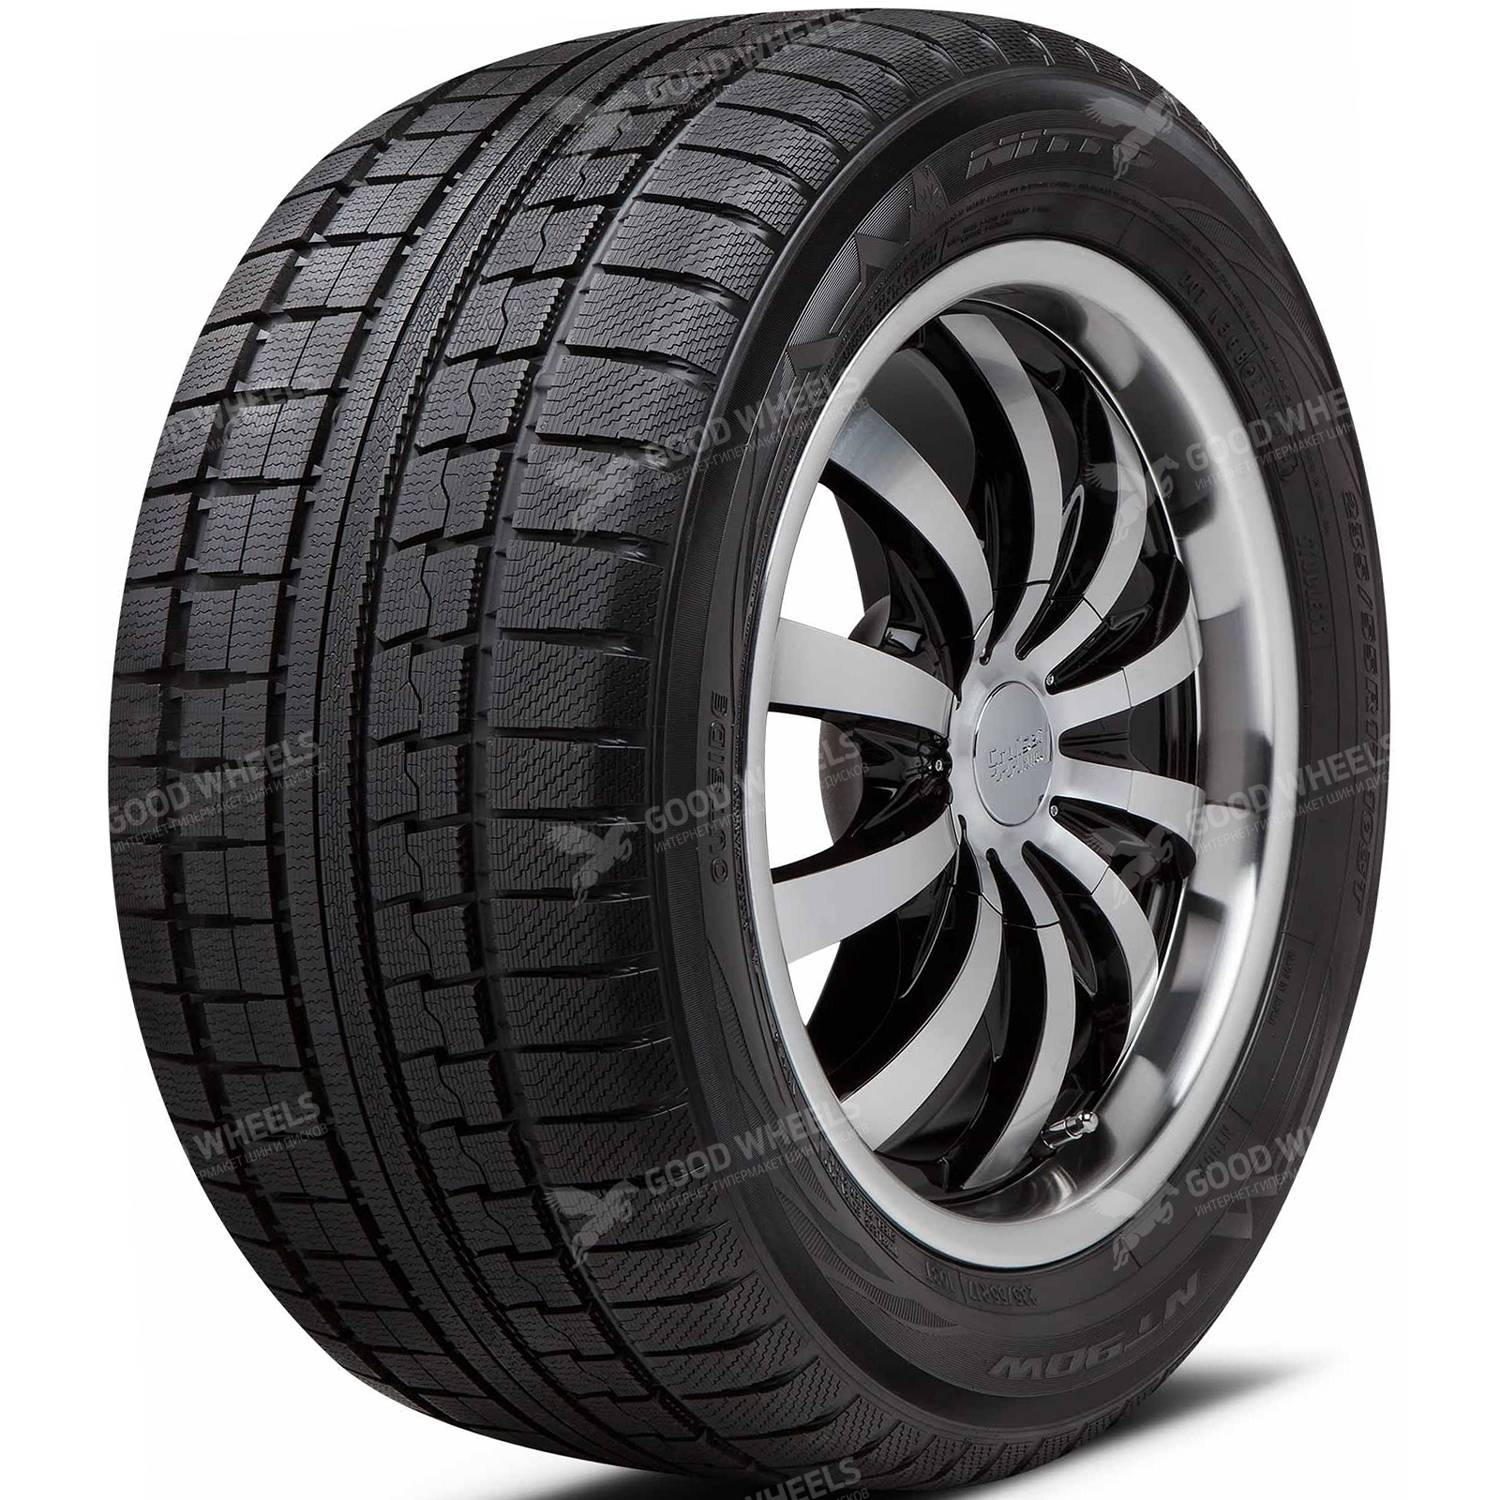 Nitto NT90W 245/45 R20 103T